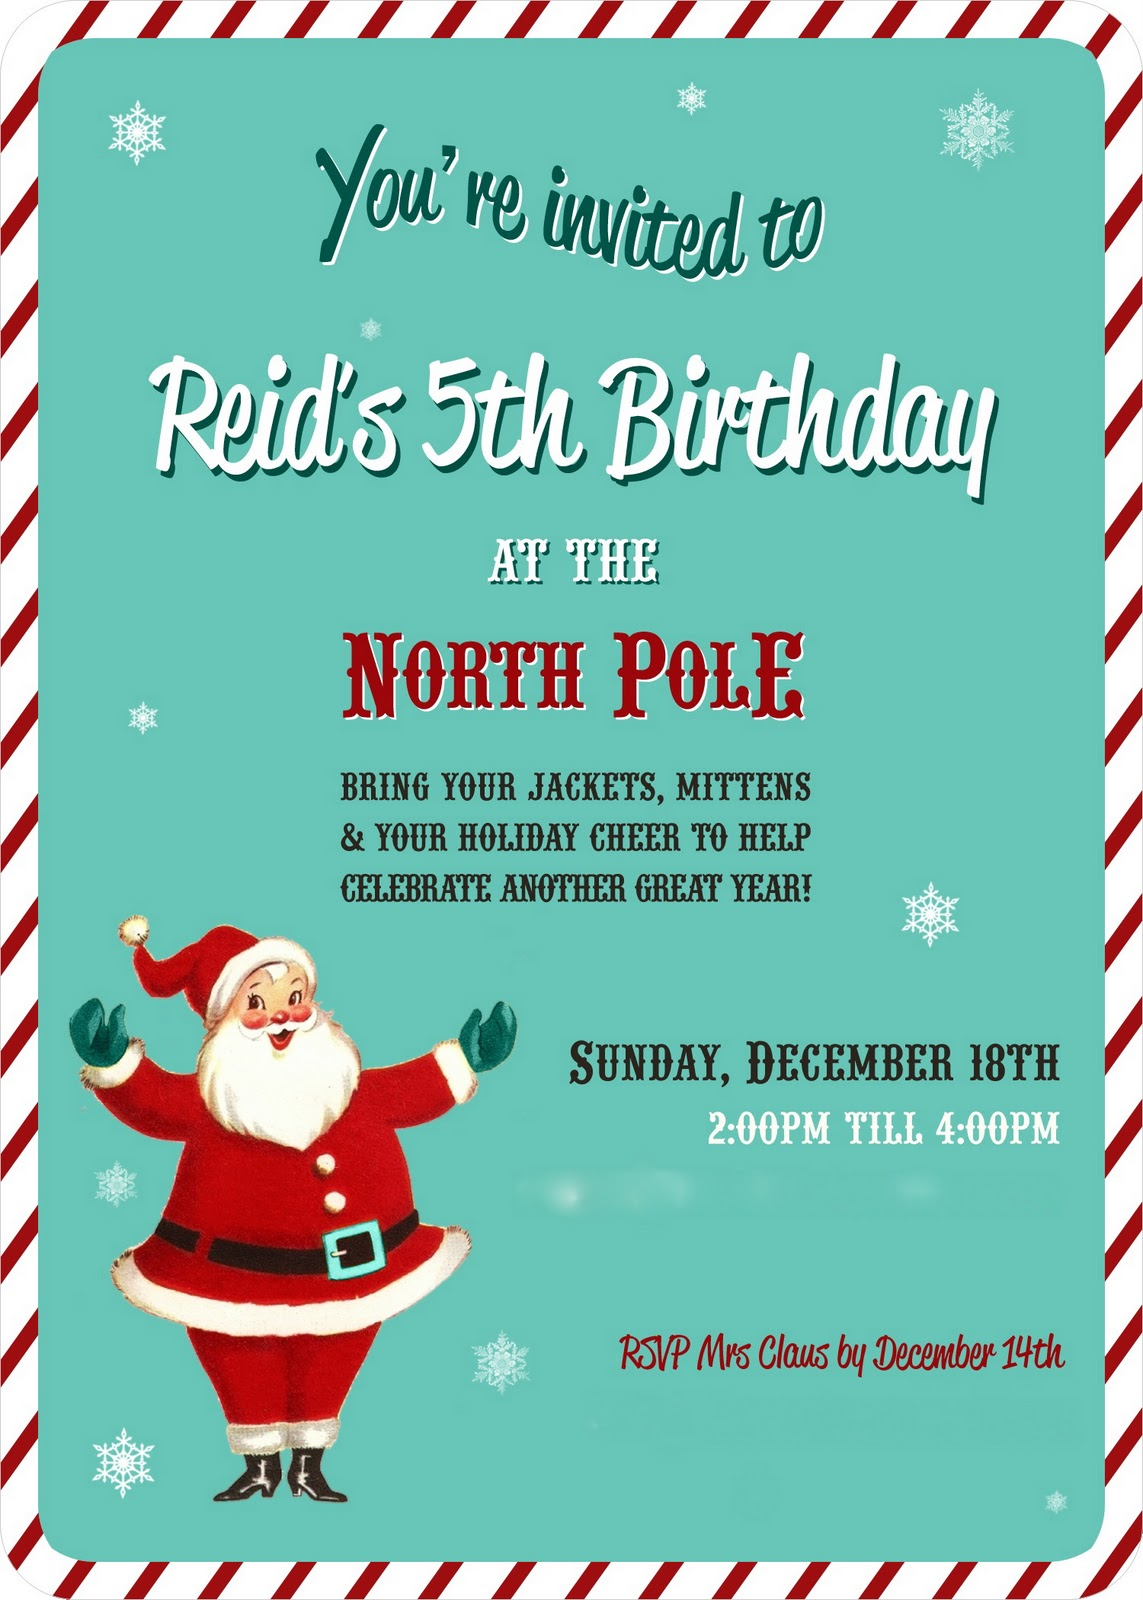 Raising Reid: I Love You to the North Pole and Back!!